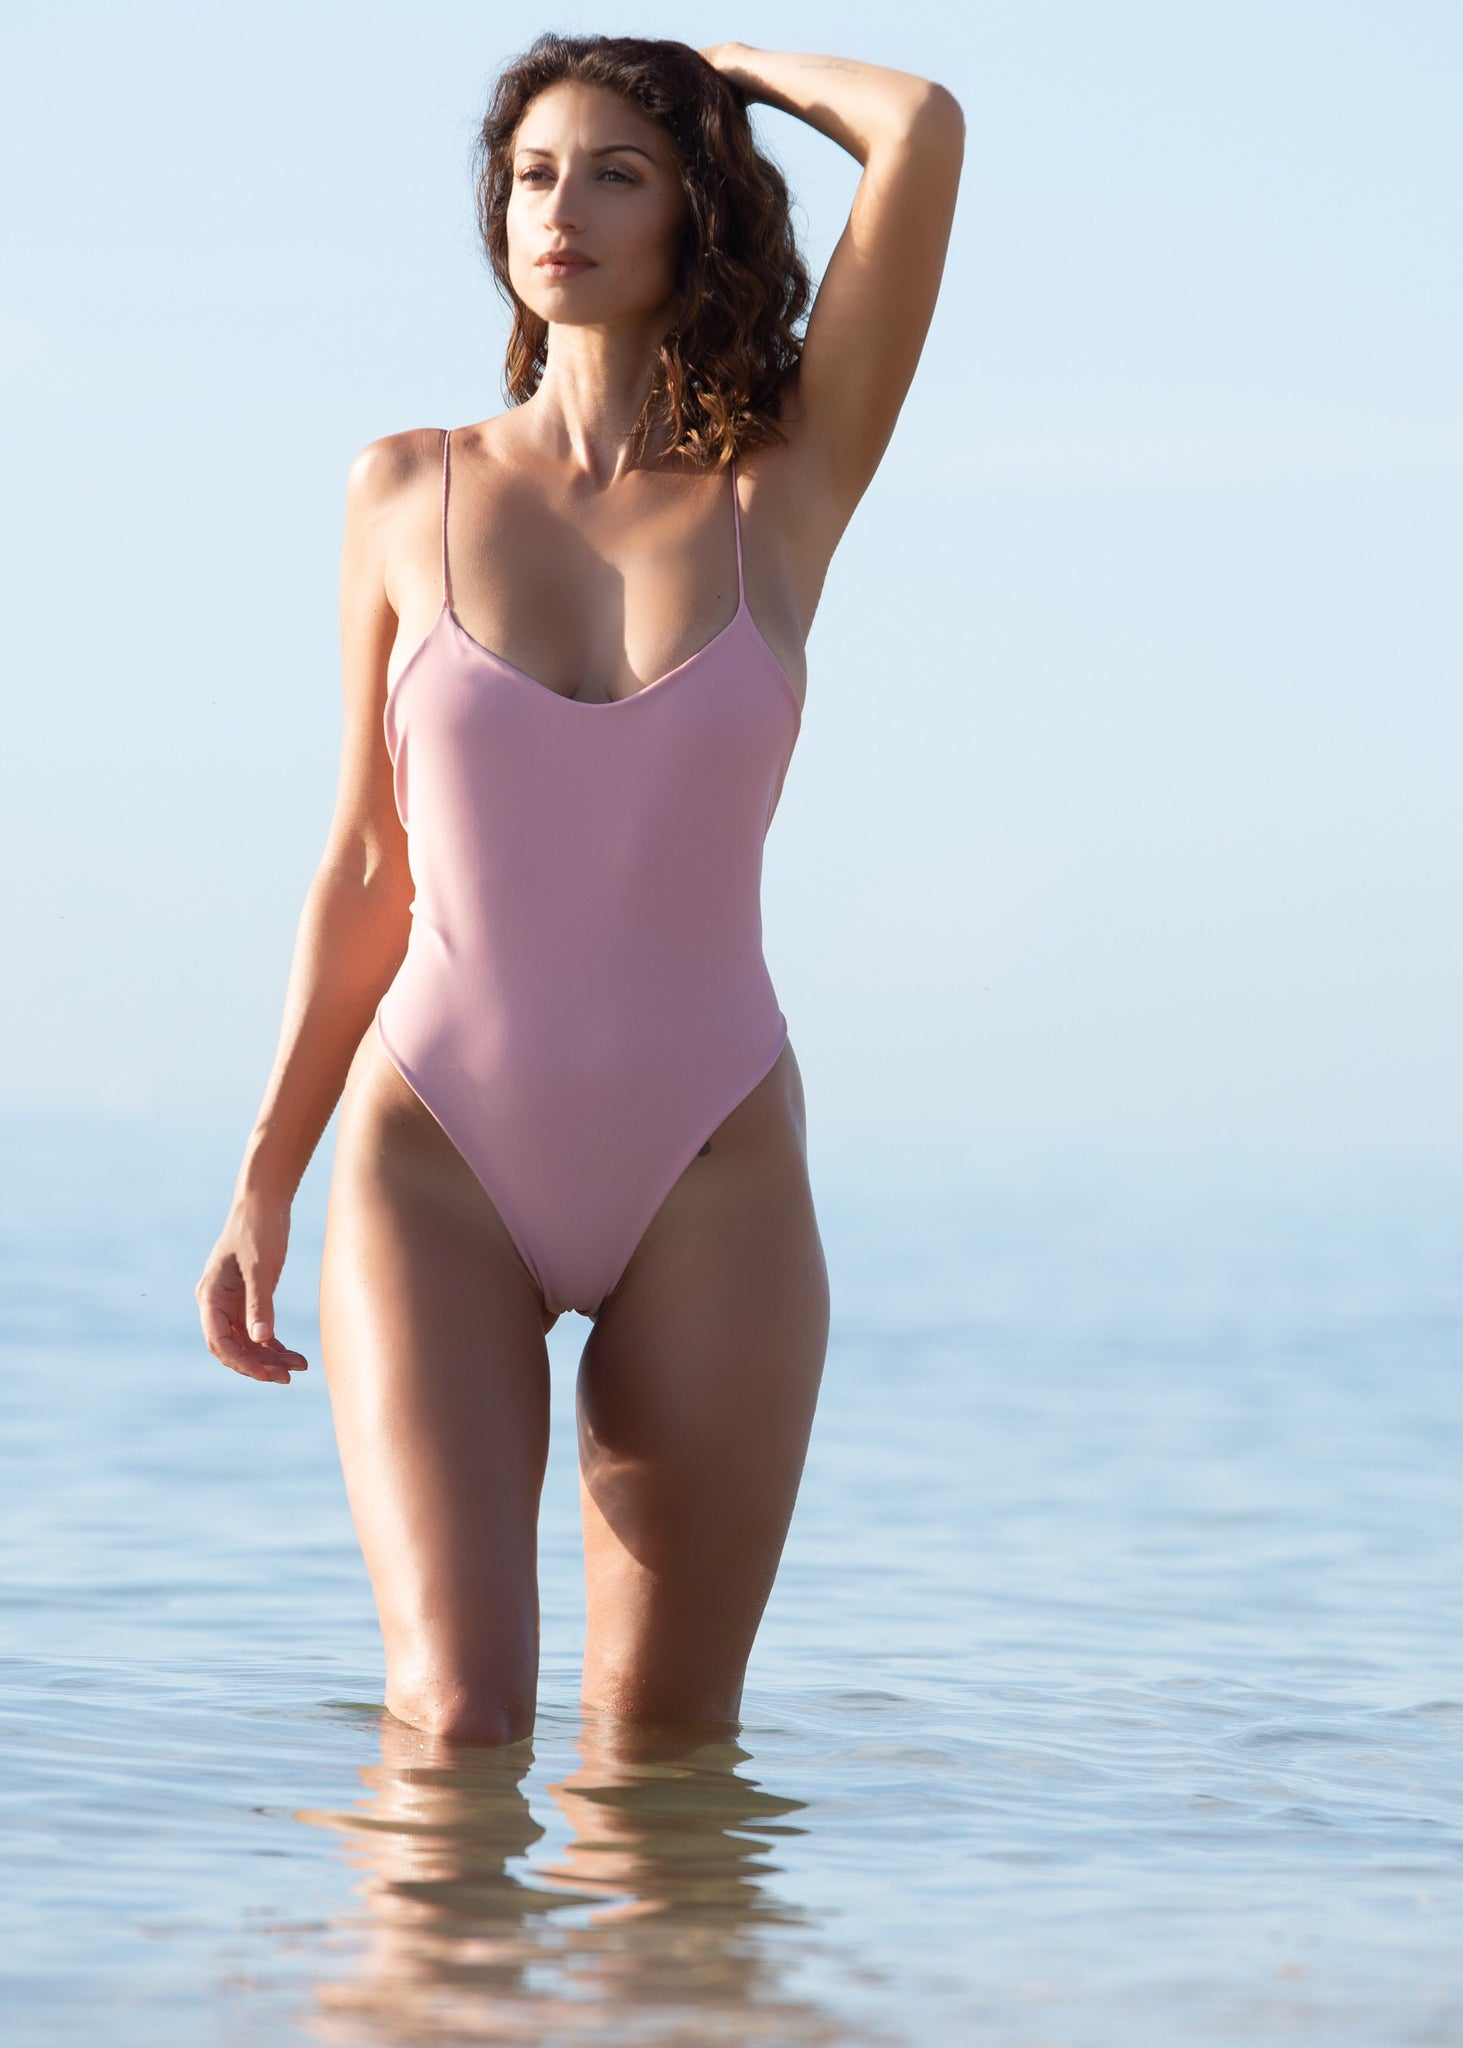 The Liria - Gabriela Pires Beachwear